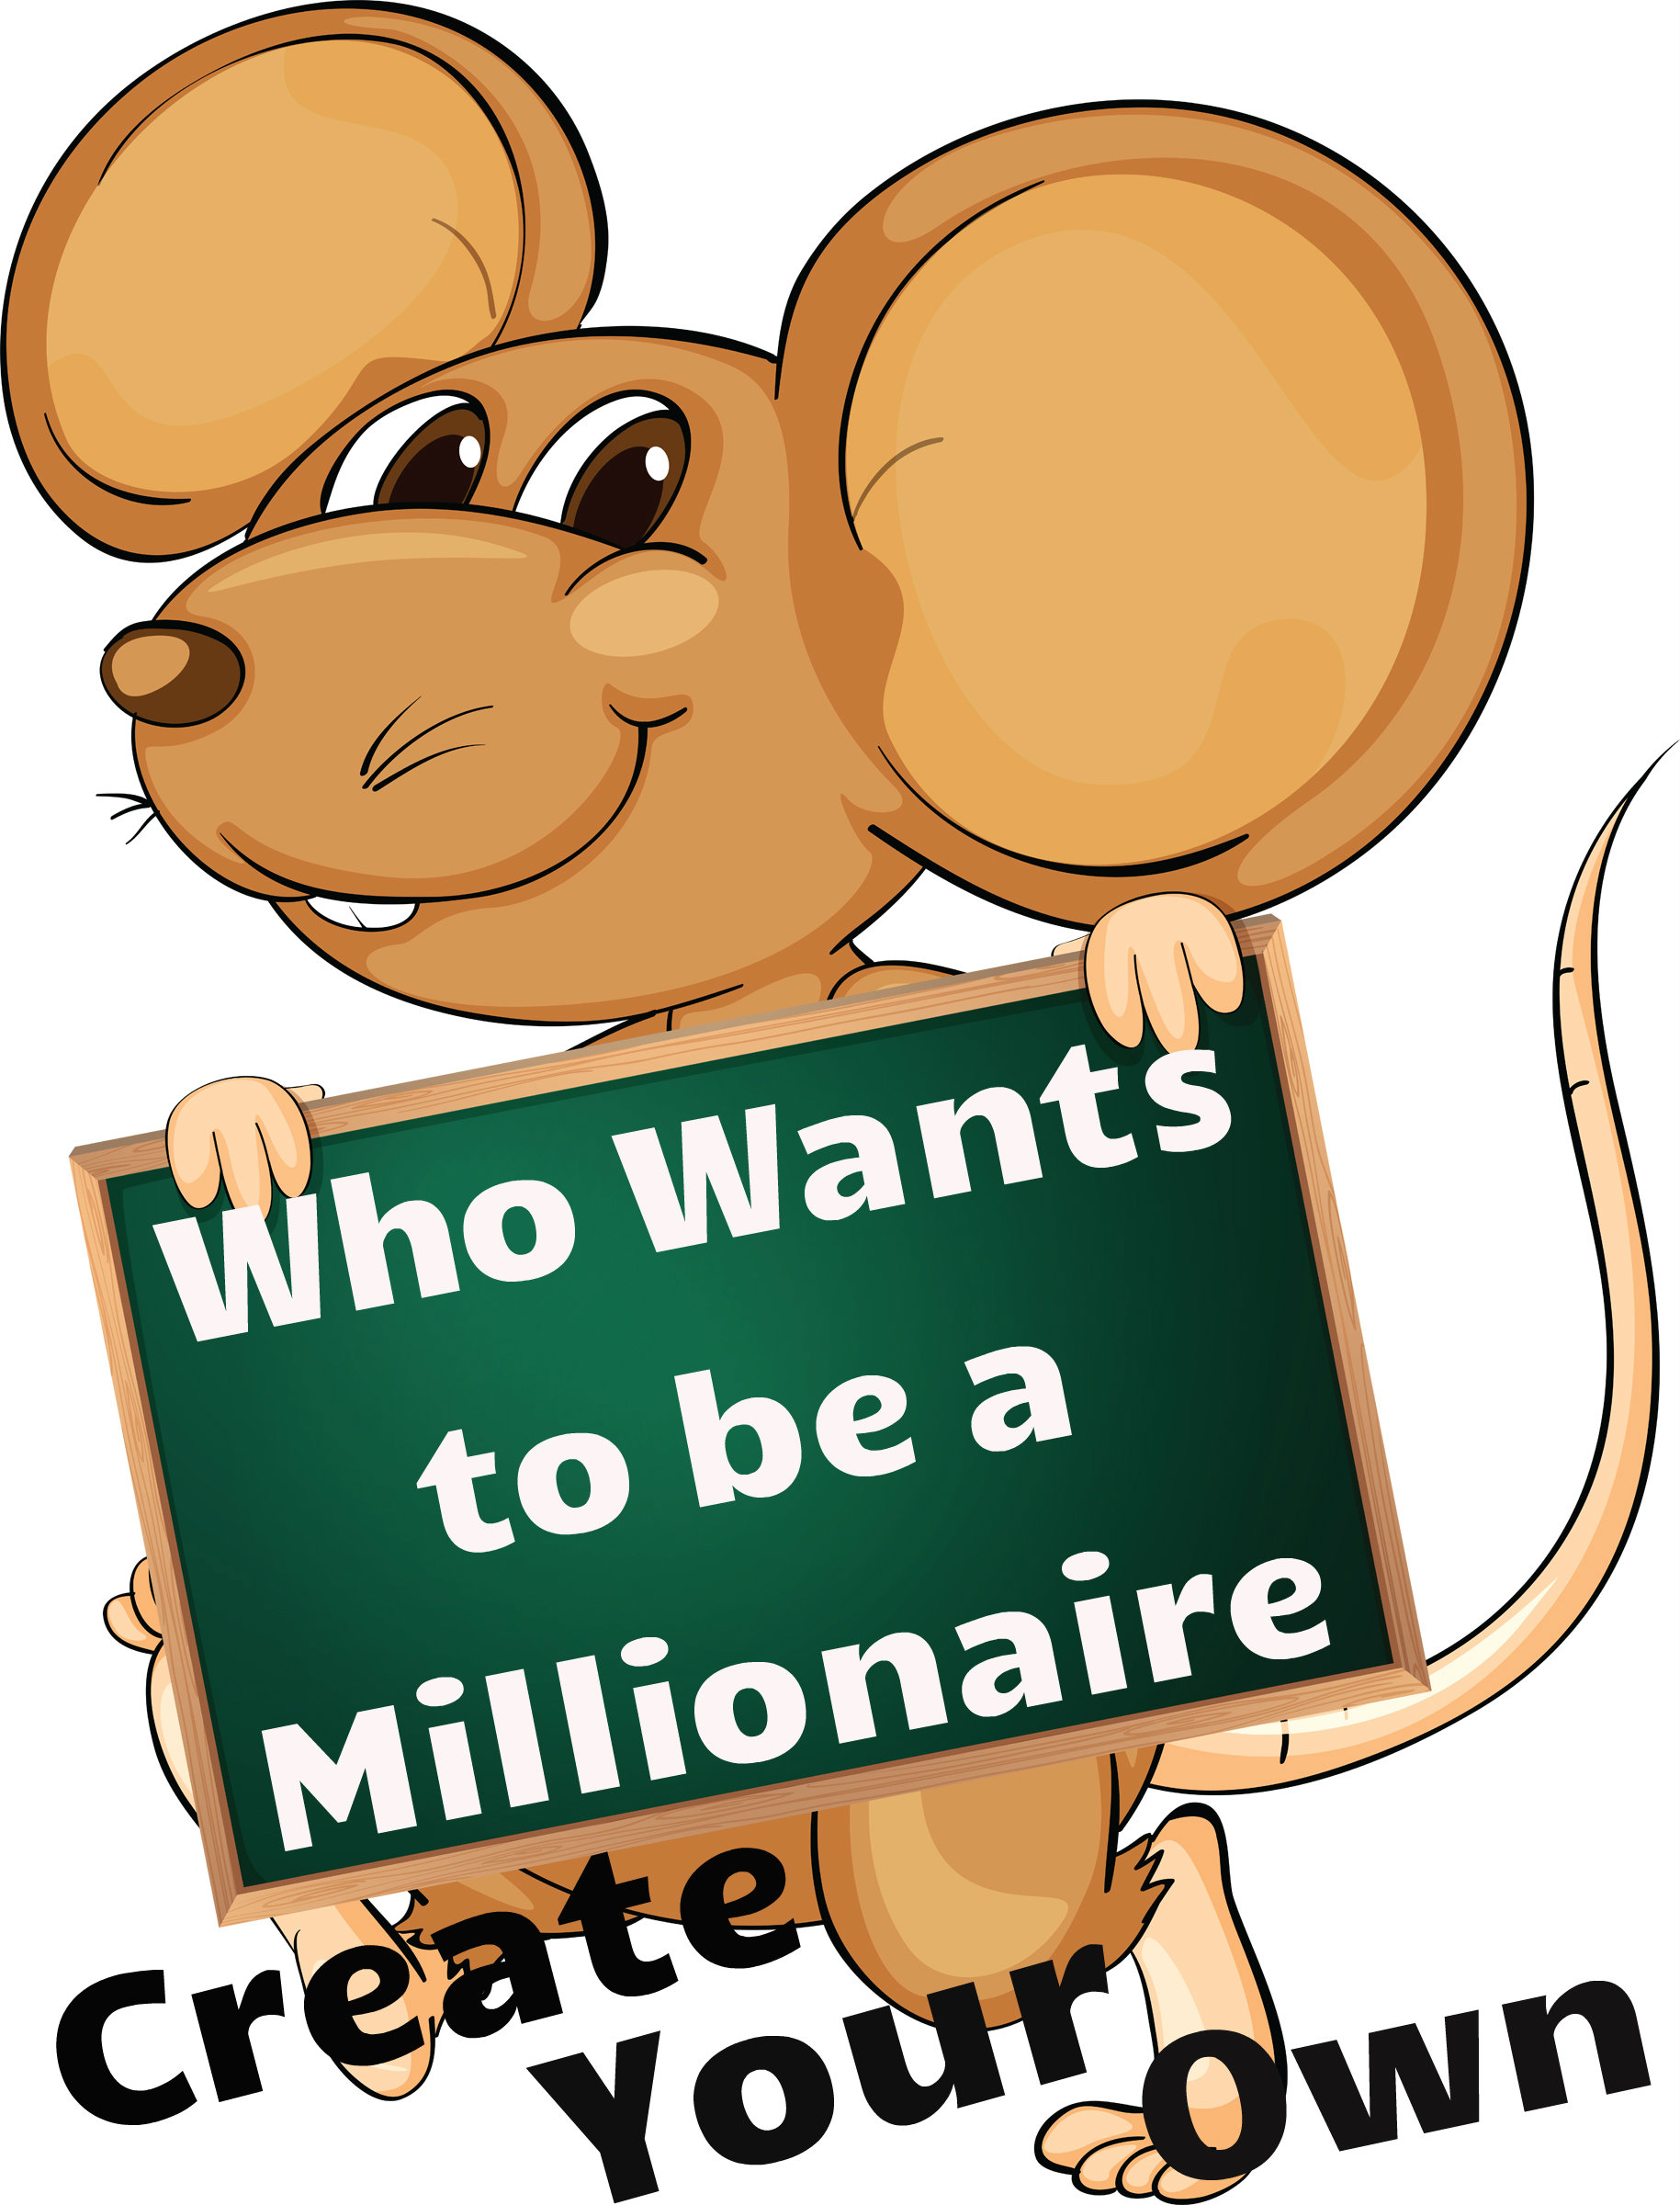 Who want to be a millionaire free game template for Who want to be a millionaire game template